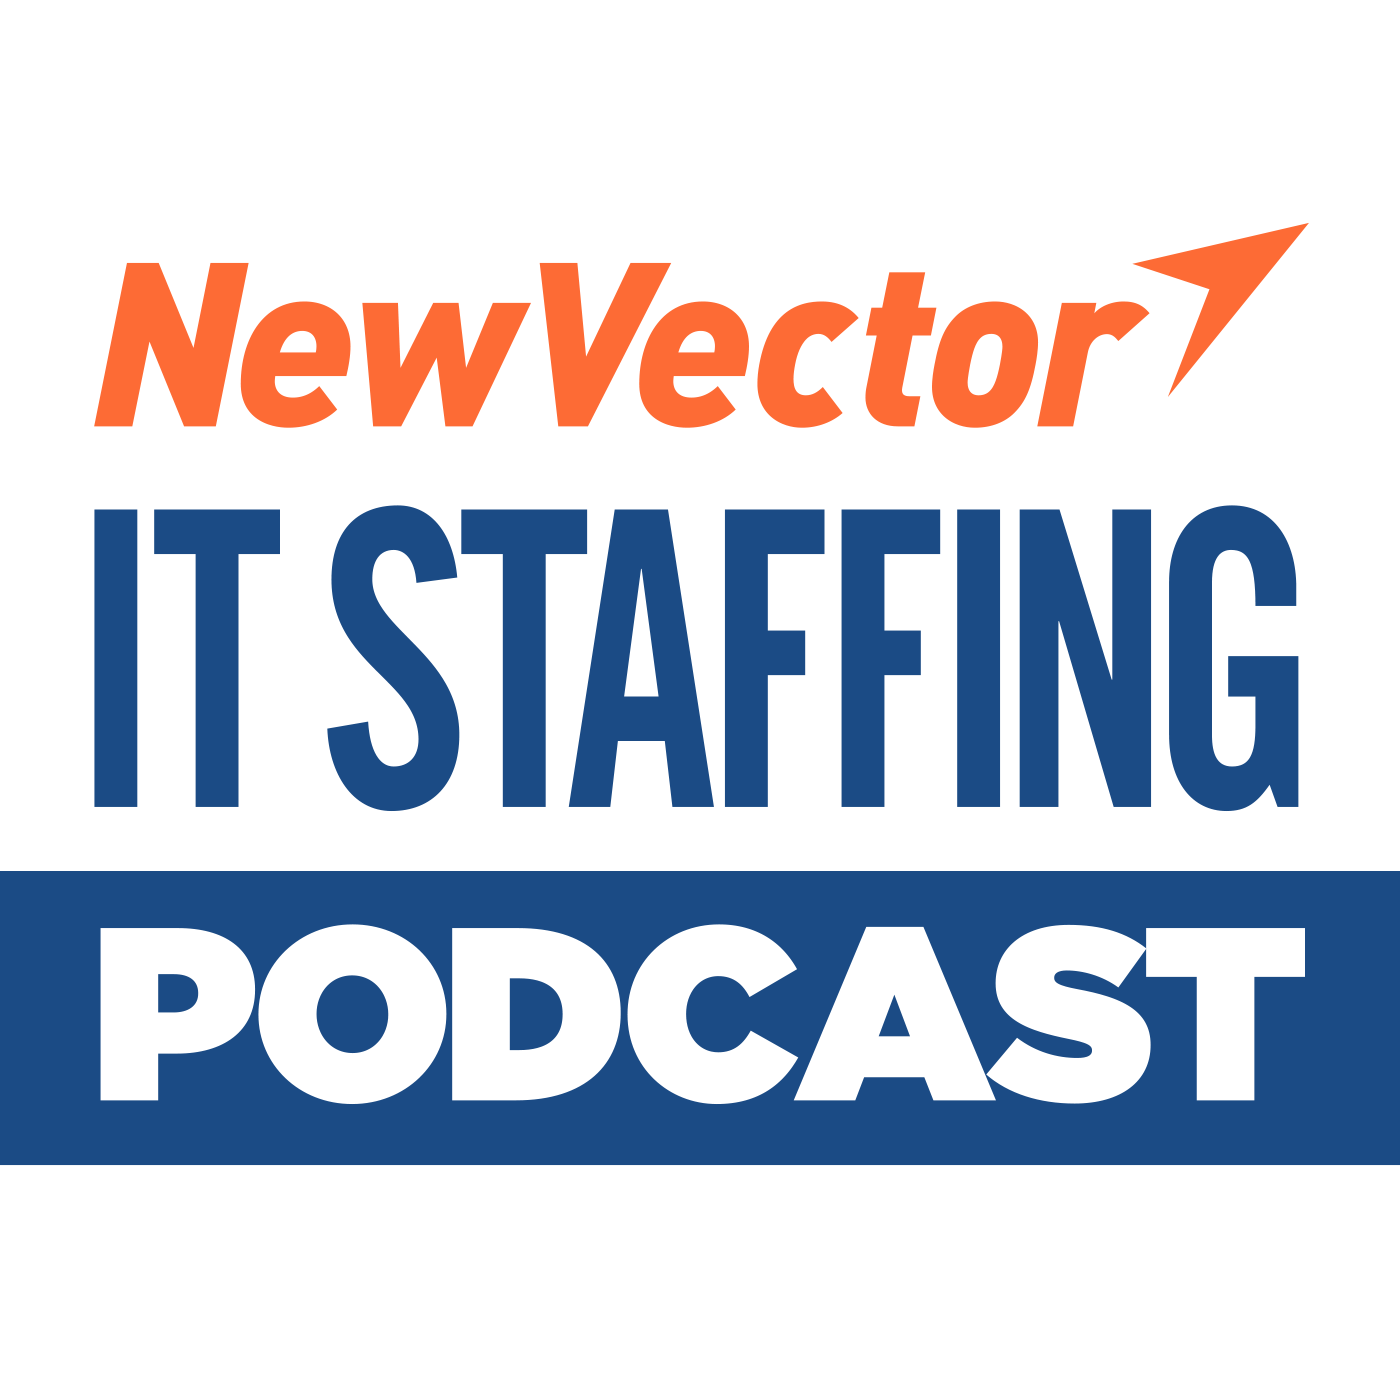 NewVector Podcast Episodes - NewVector